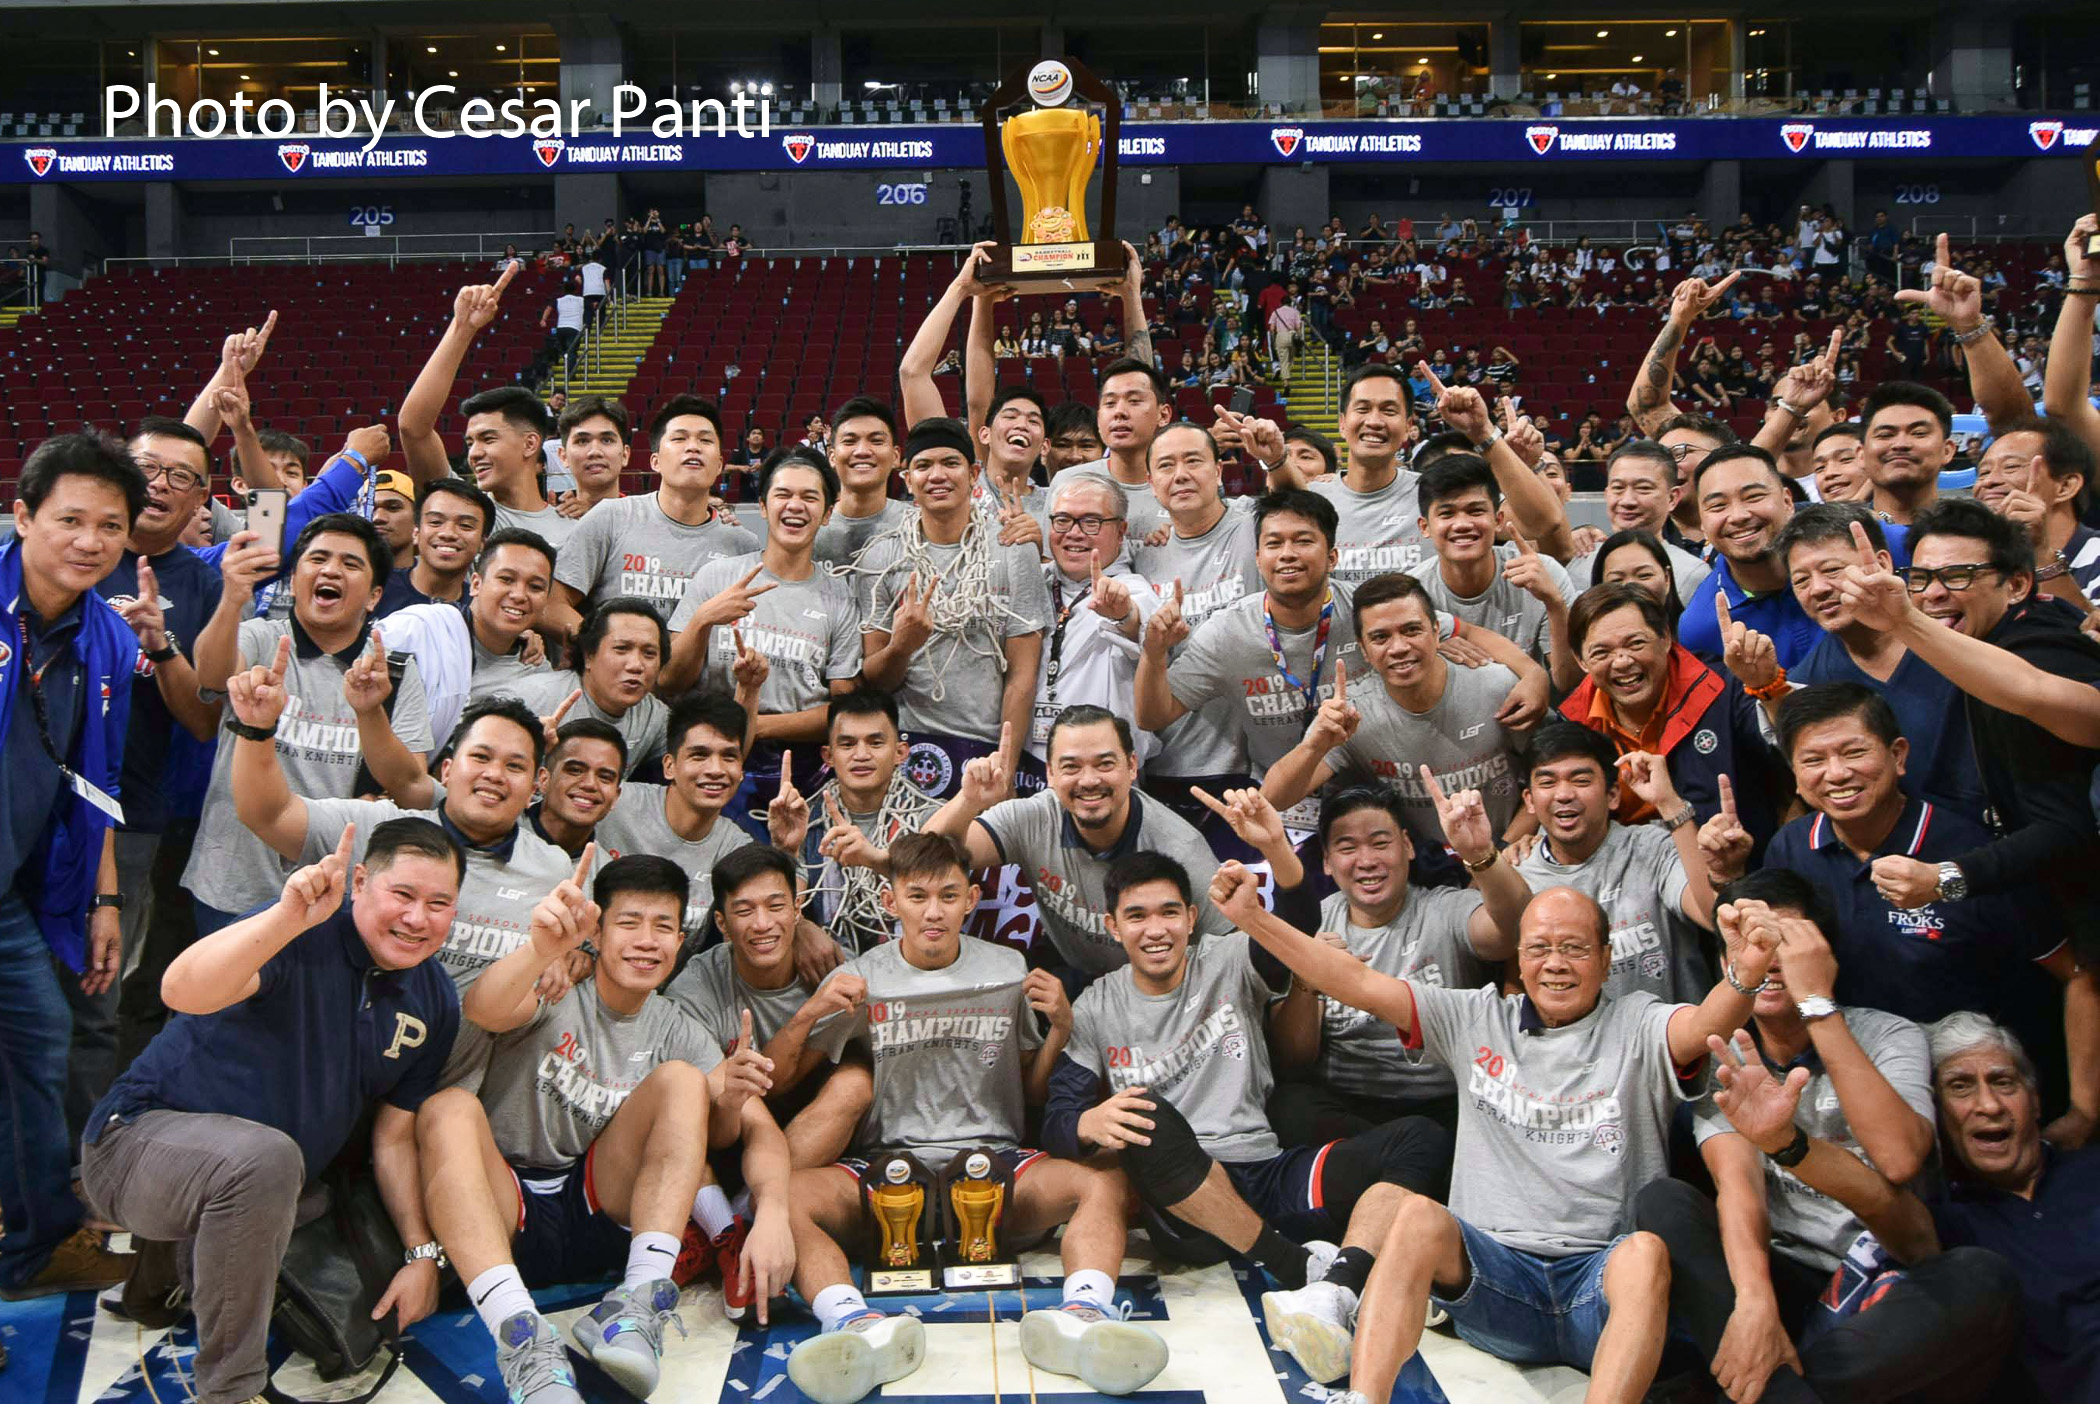 Letran dethrones San Beda in thrilling finish, reclaims NCAA title